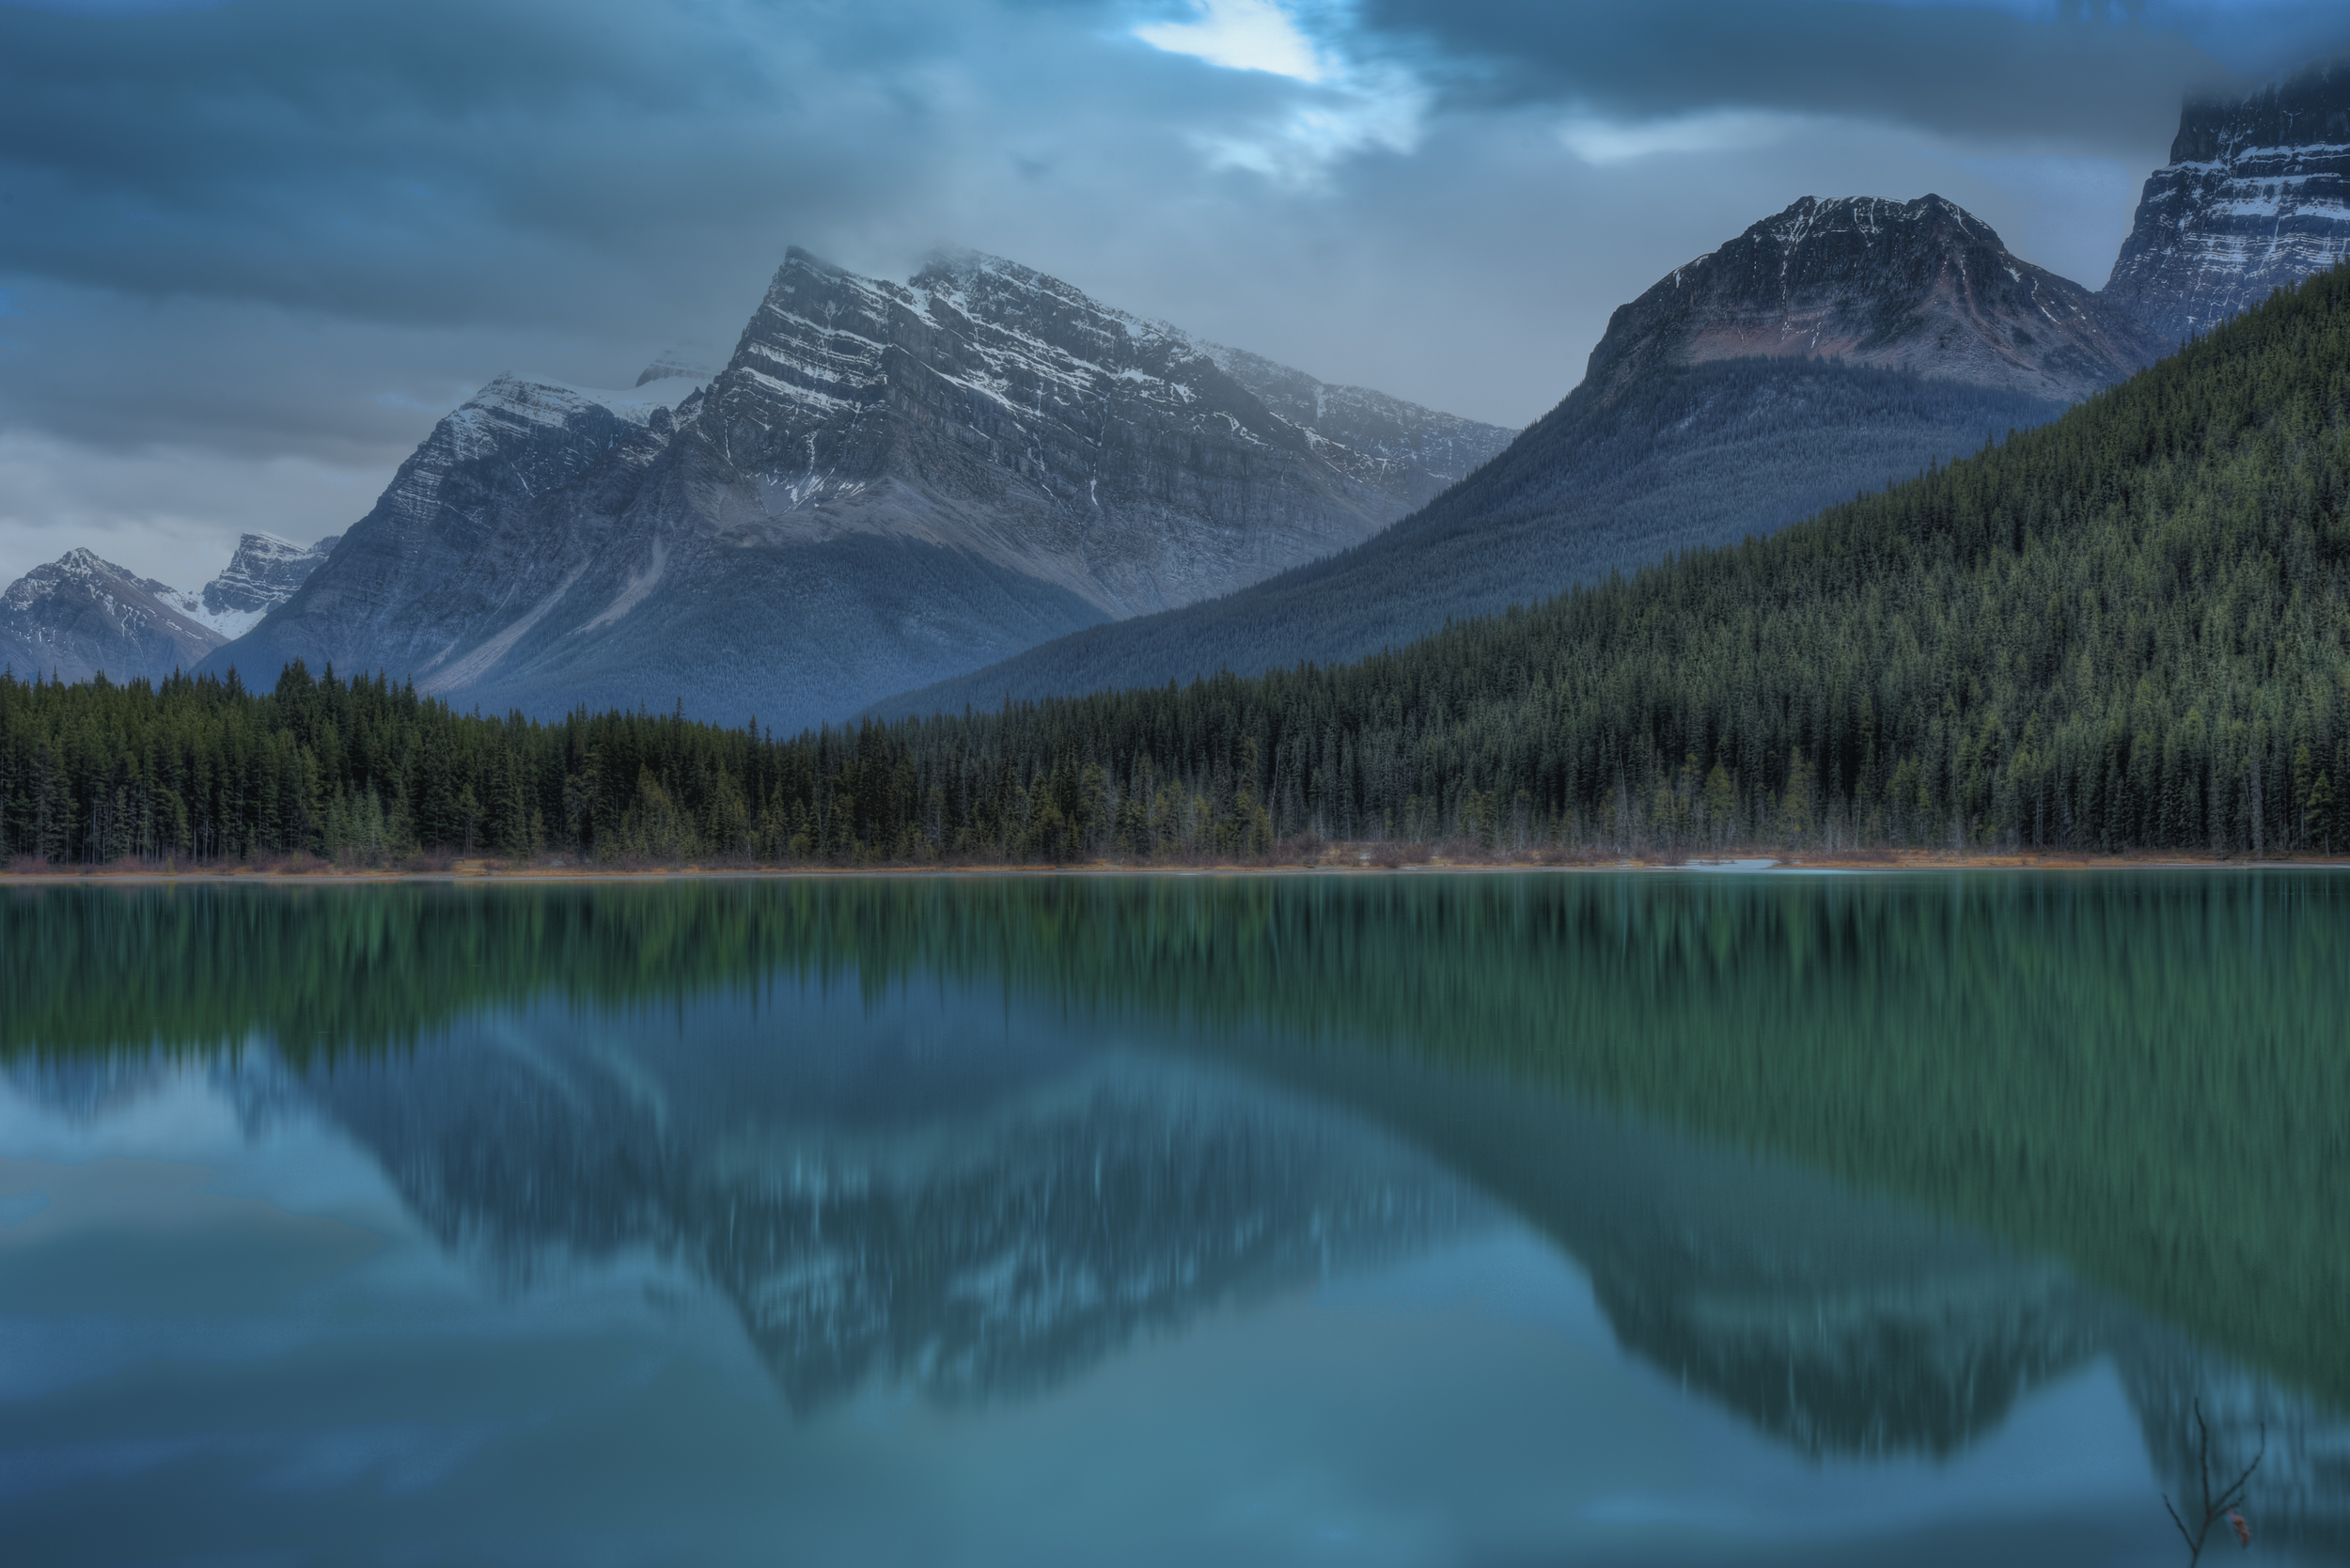 Along the Icefields Parkway, Alberta